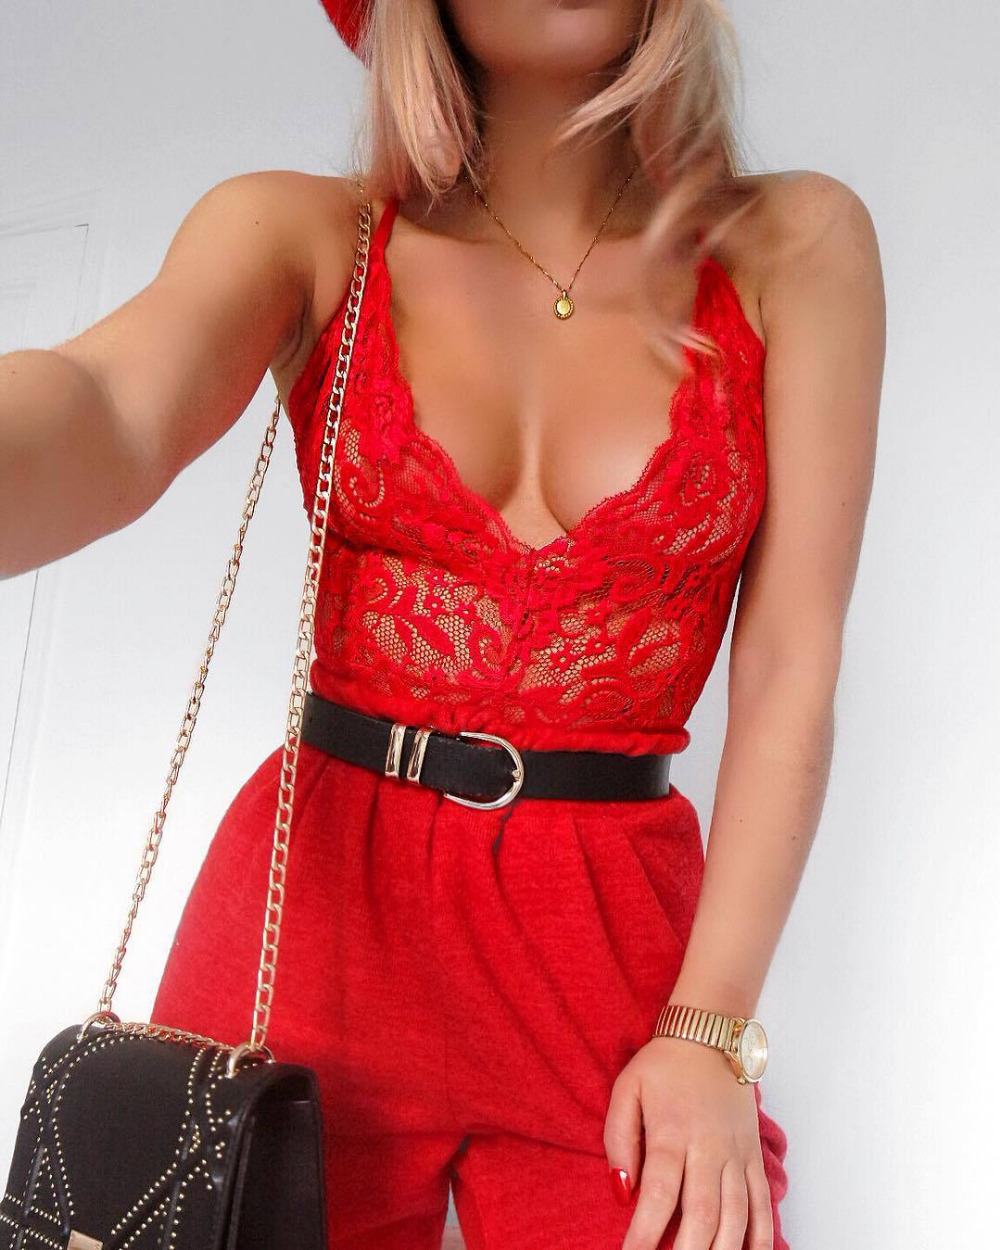 Red See Through Sheer Lace Plunge Lingerie Bodysuit